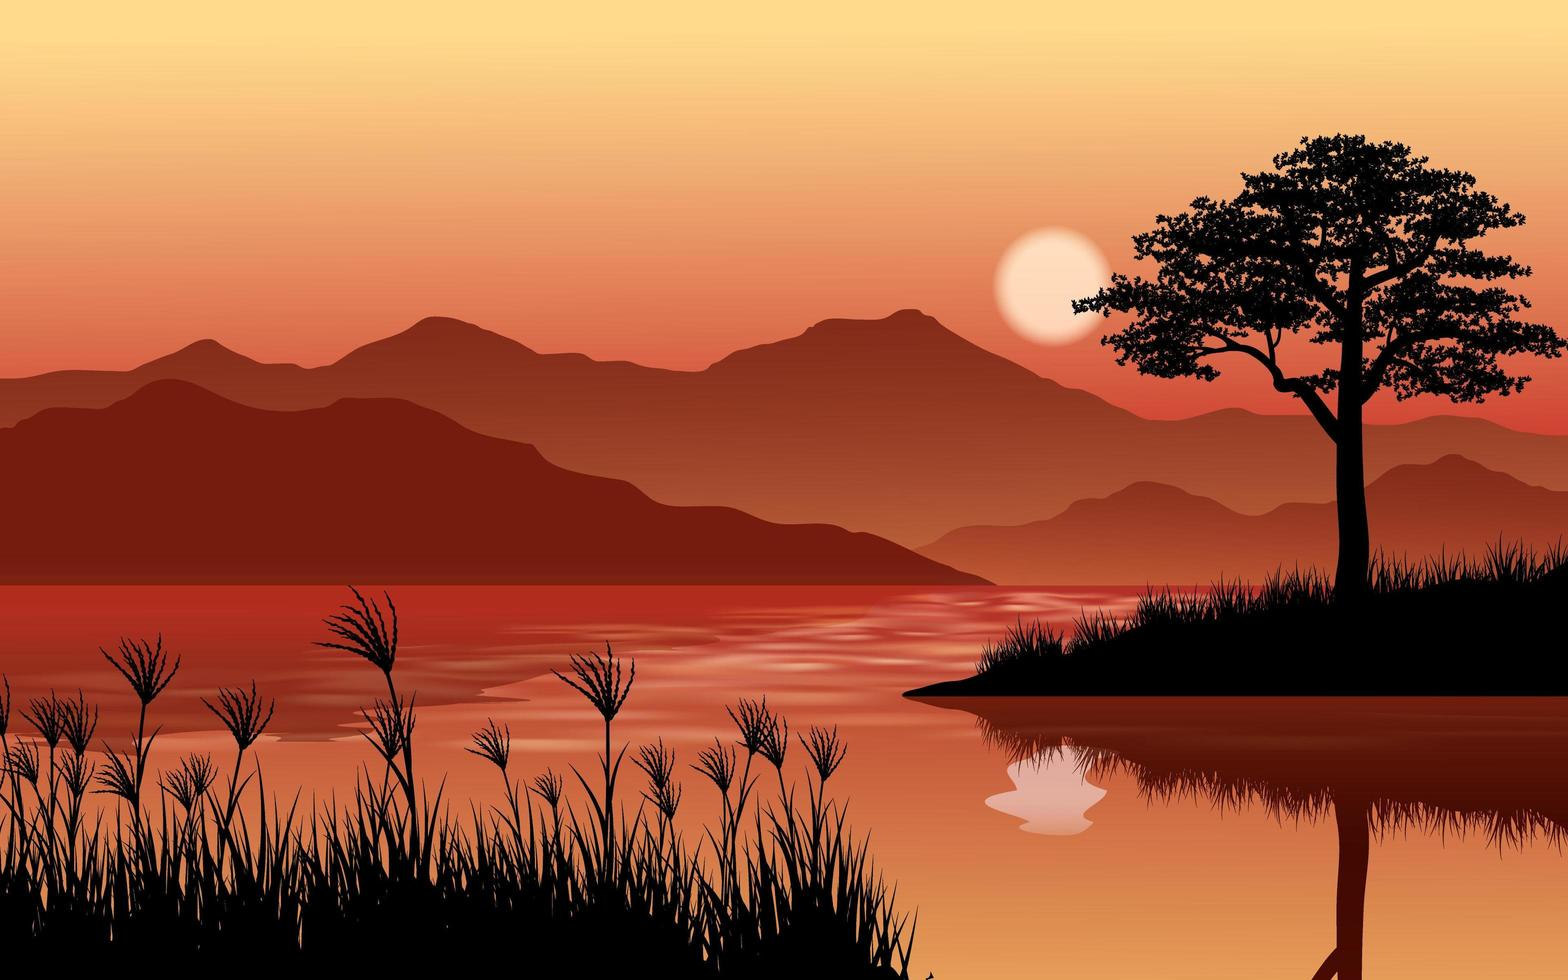 Lake and Mountains in Afternoon vector